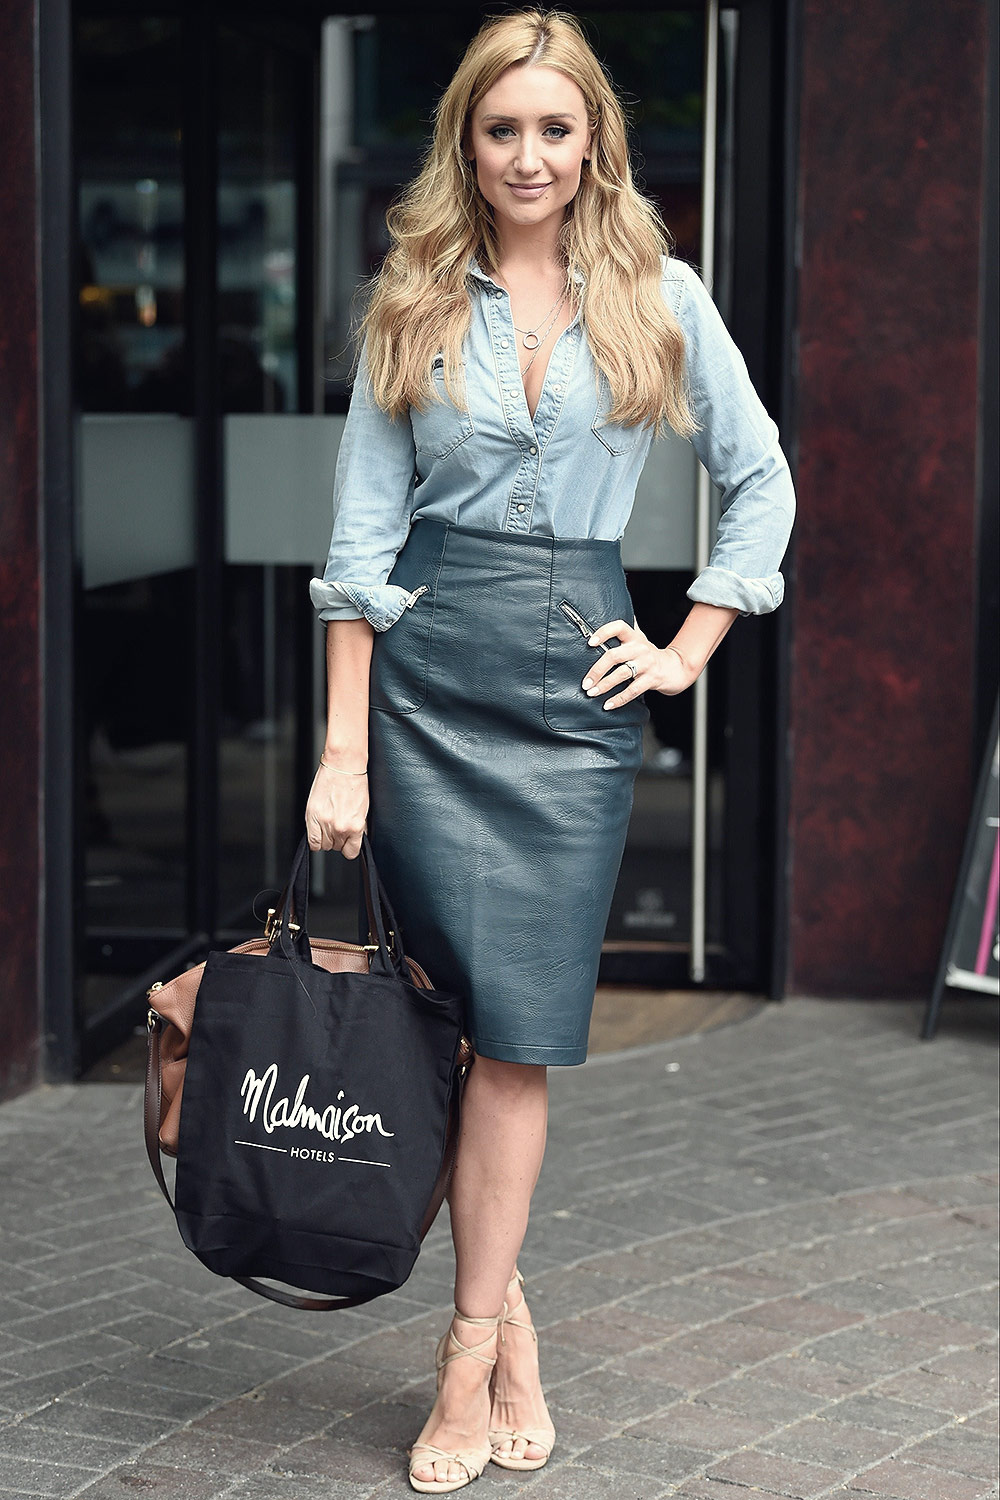 Catherine Tyldesley Seen At Malmaison Hotel Leather